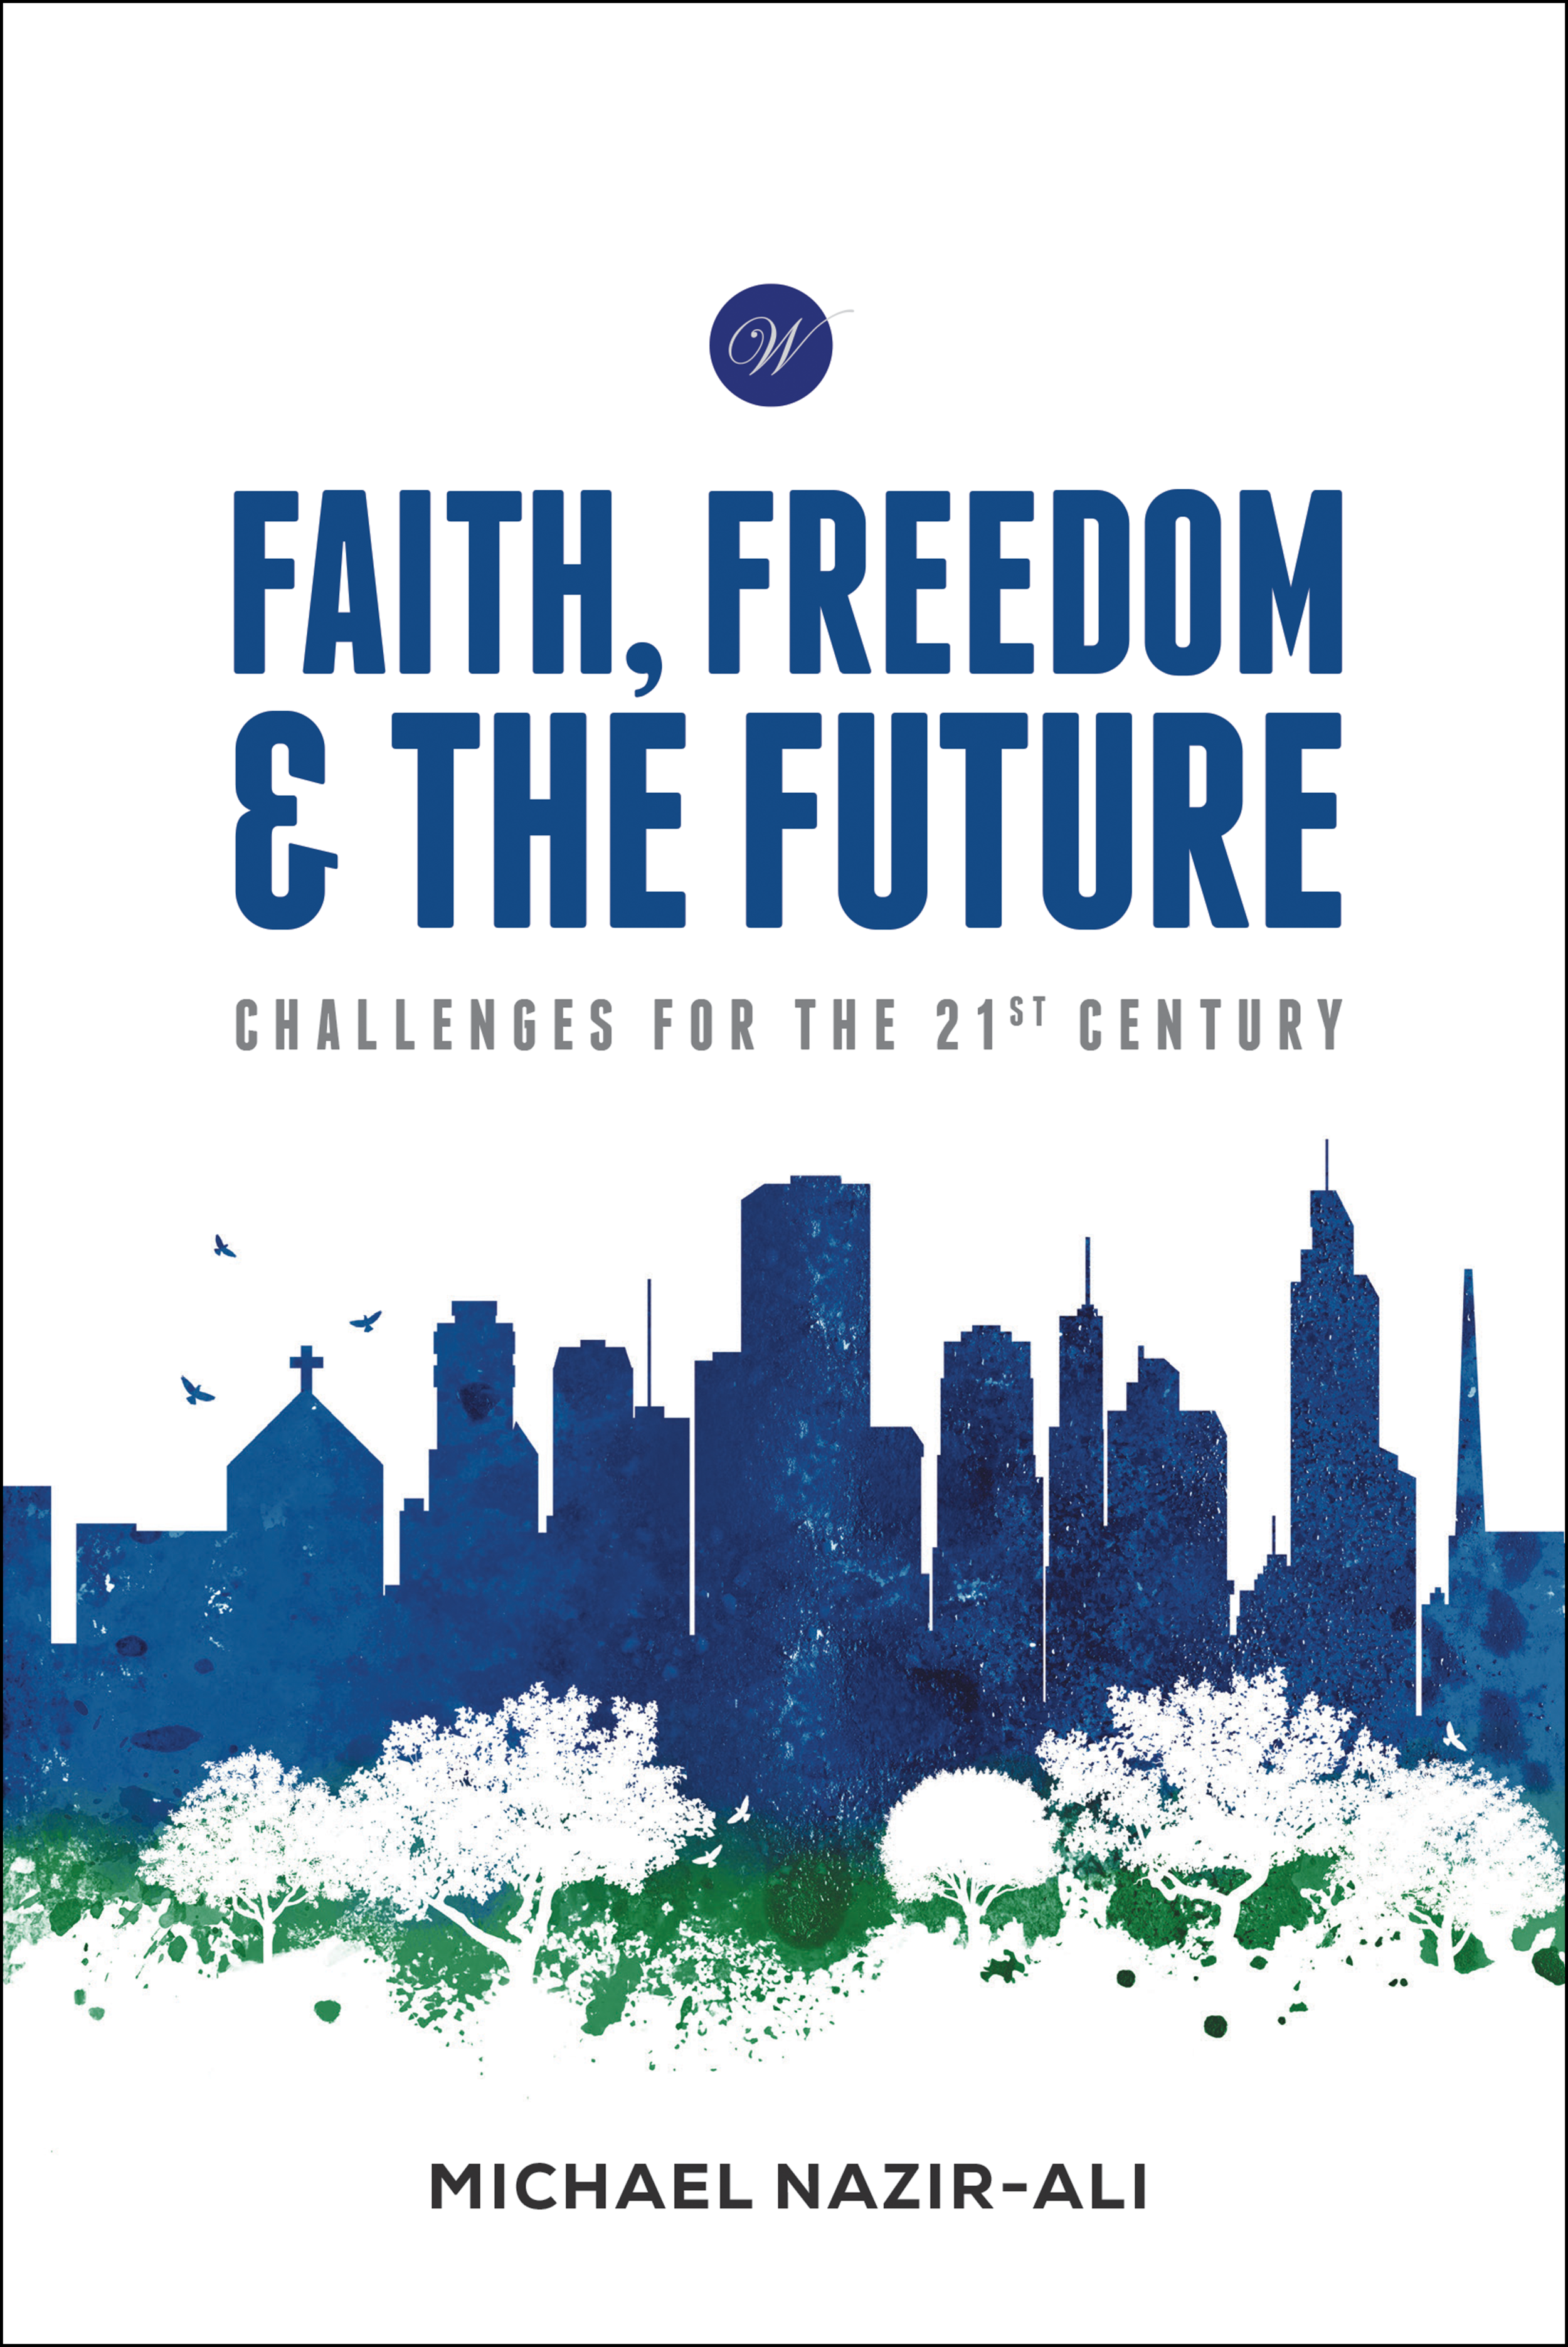 Faith, Freedom & The Future - Discusses contemporary issues in the church and society